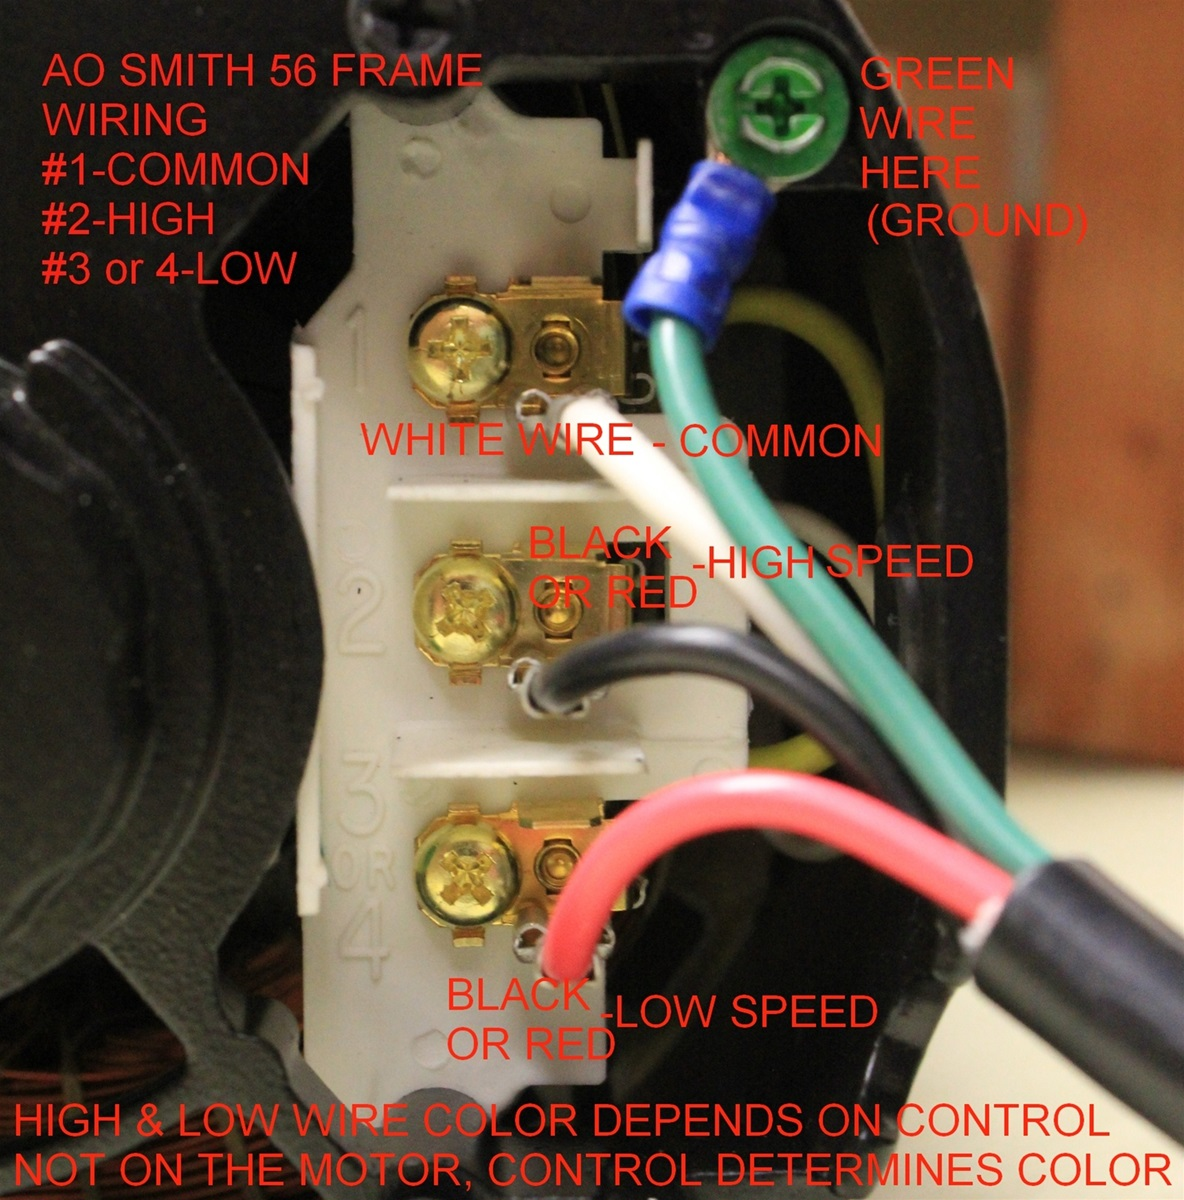 Waterway37216211W 6 waterway spa pump 3721621 1w ex2 aqua flo xp2e replacement pump aqua flo xp2e wiring diagram at bayanpartner.co